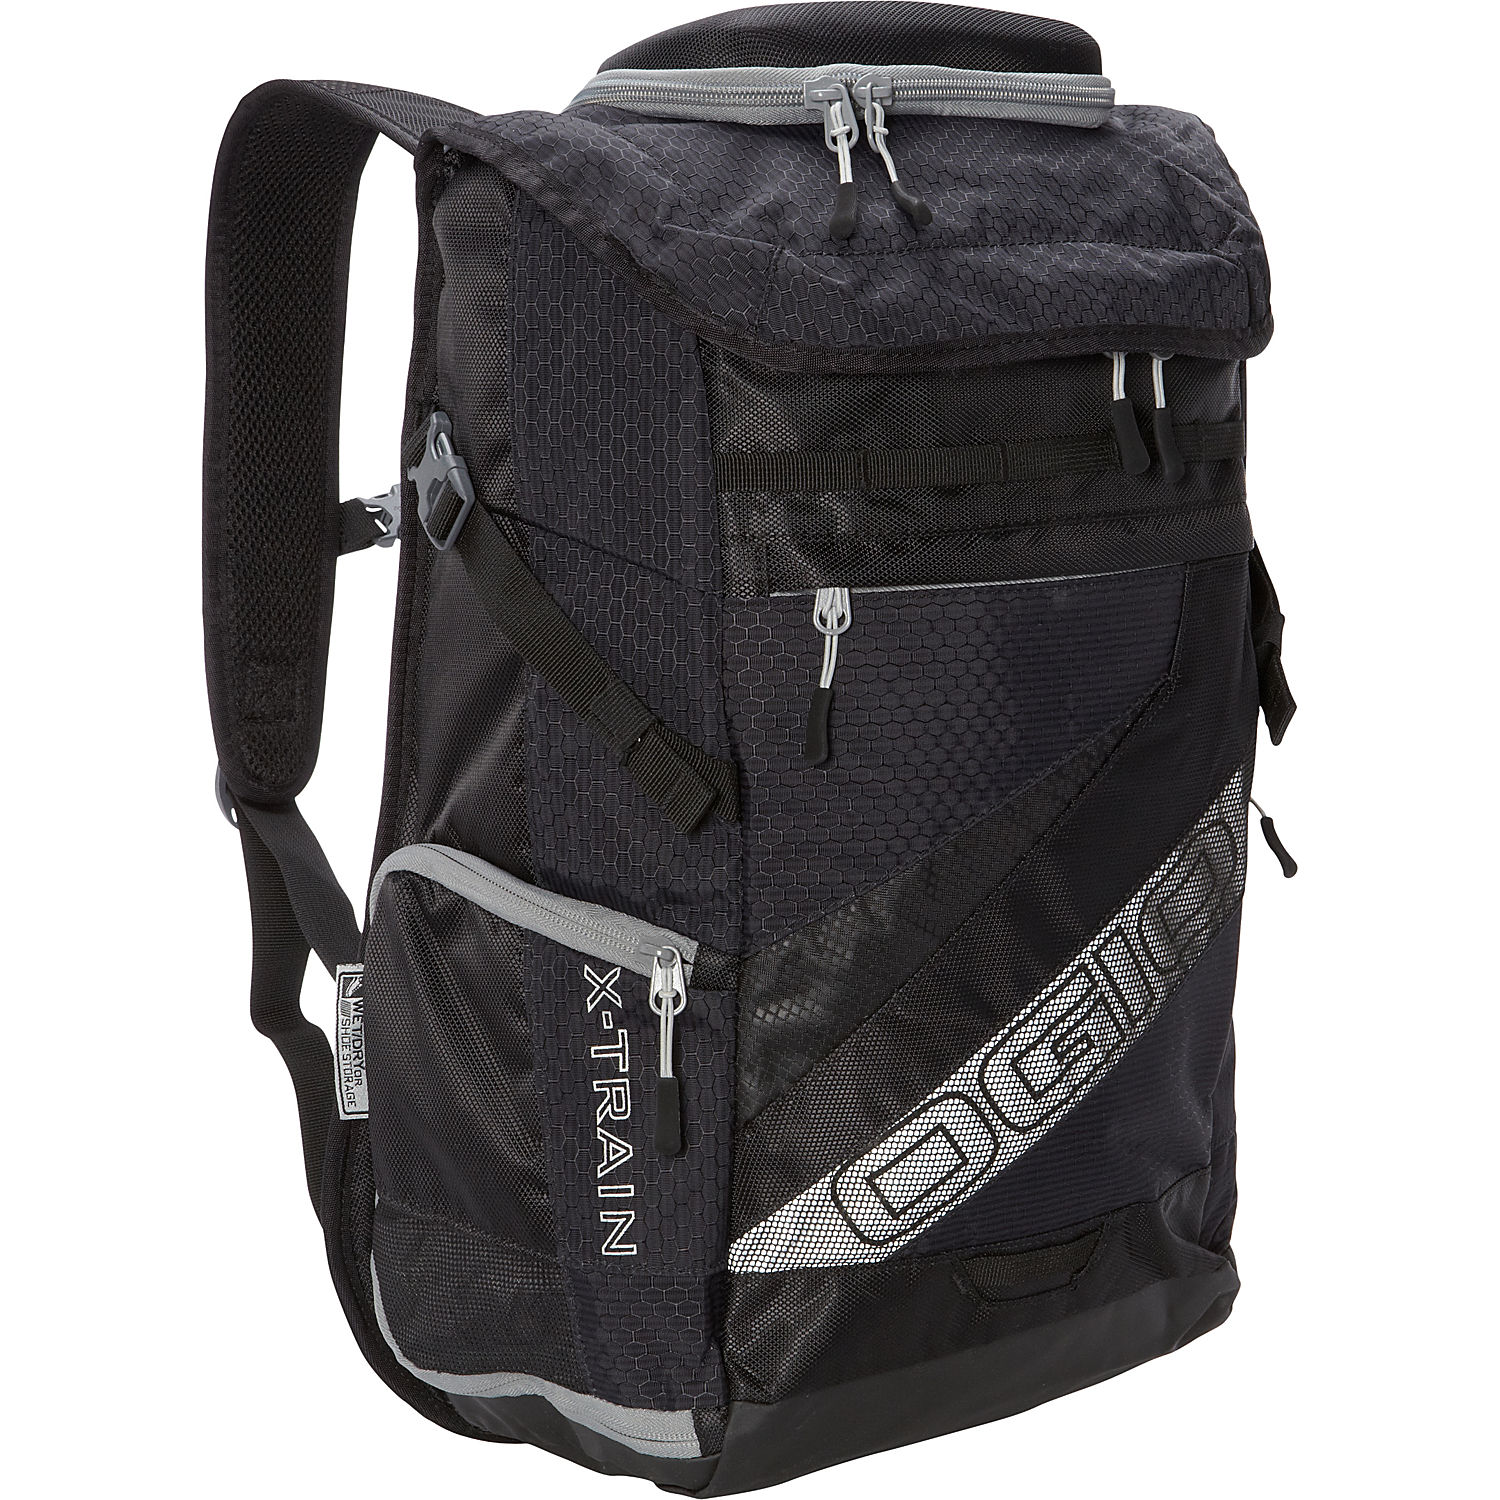 картинка Рюкзак OGIO X-Train Pack BlackSilver 112039.030 от магазина Техника+